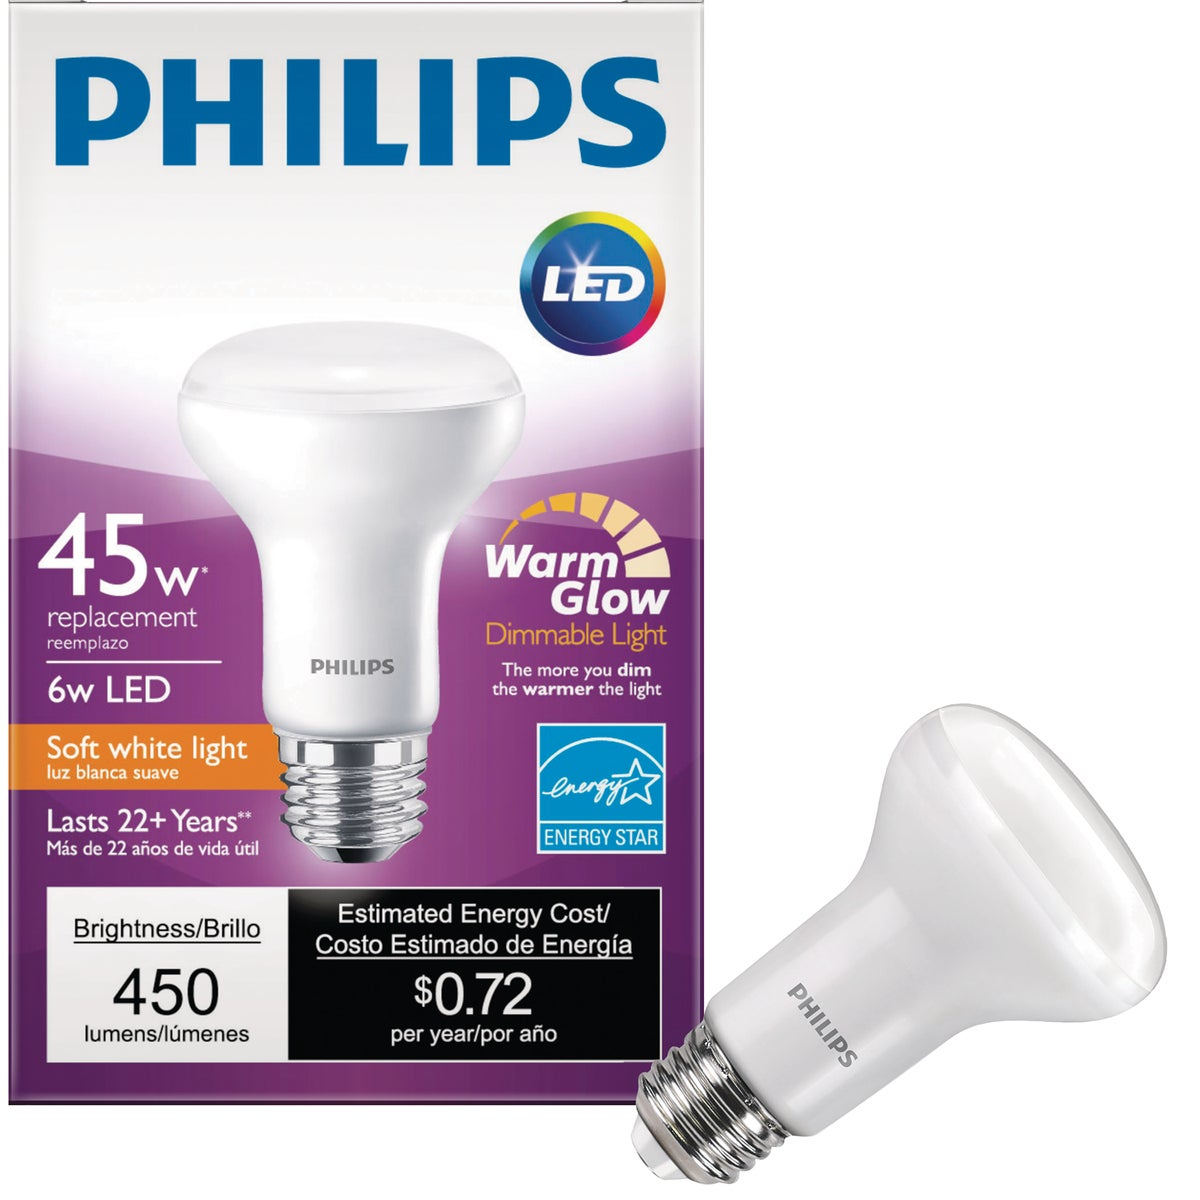 9W R20 LED 27K BULB - RLR209W27KD by TCP